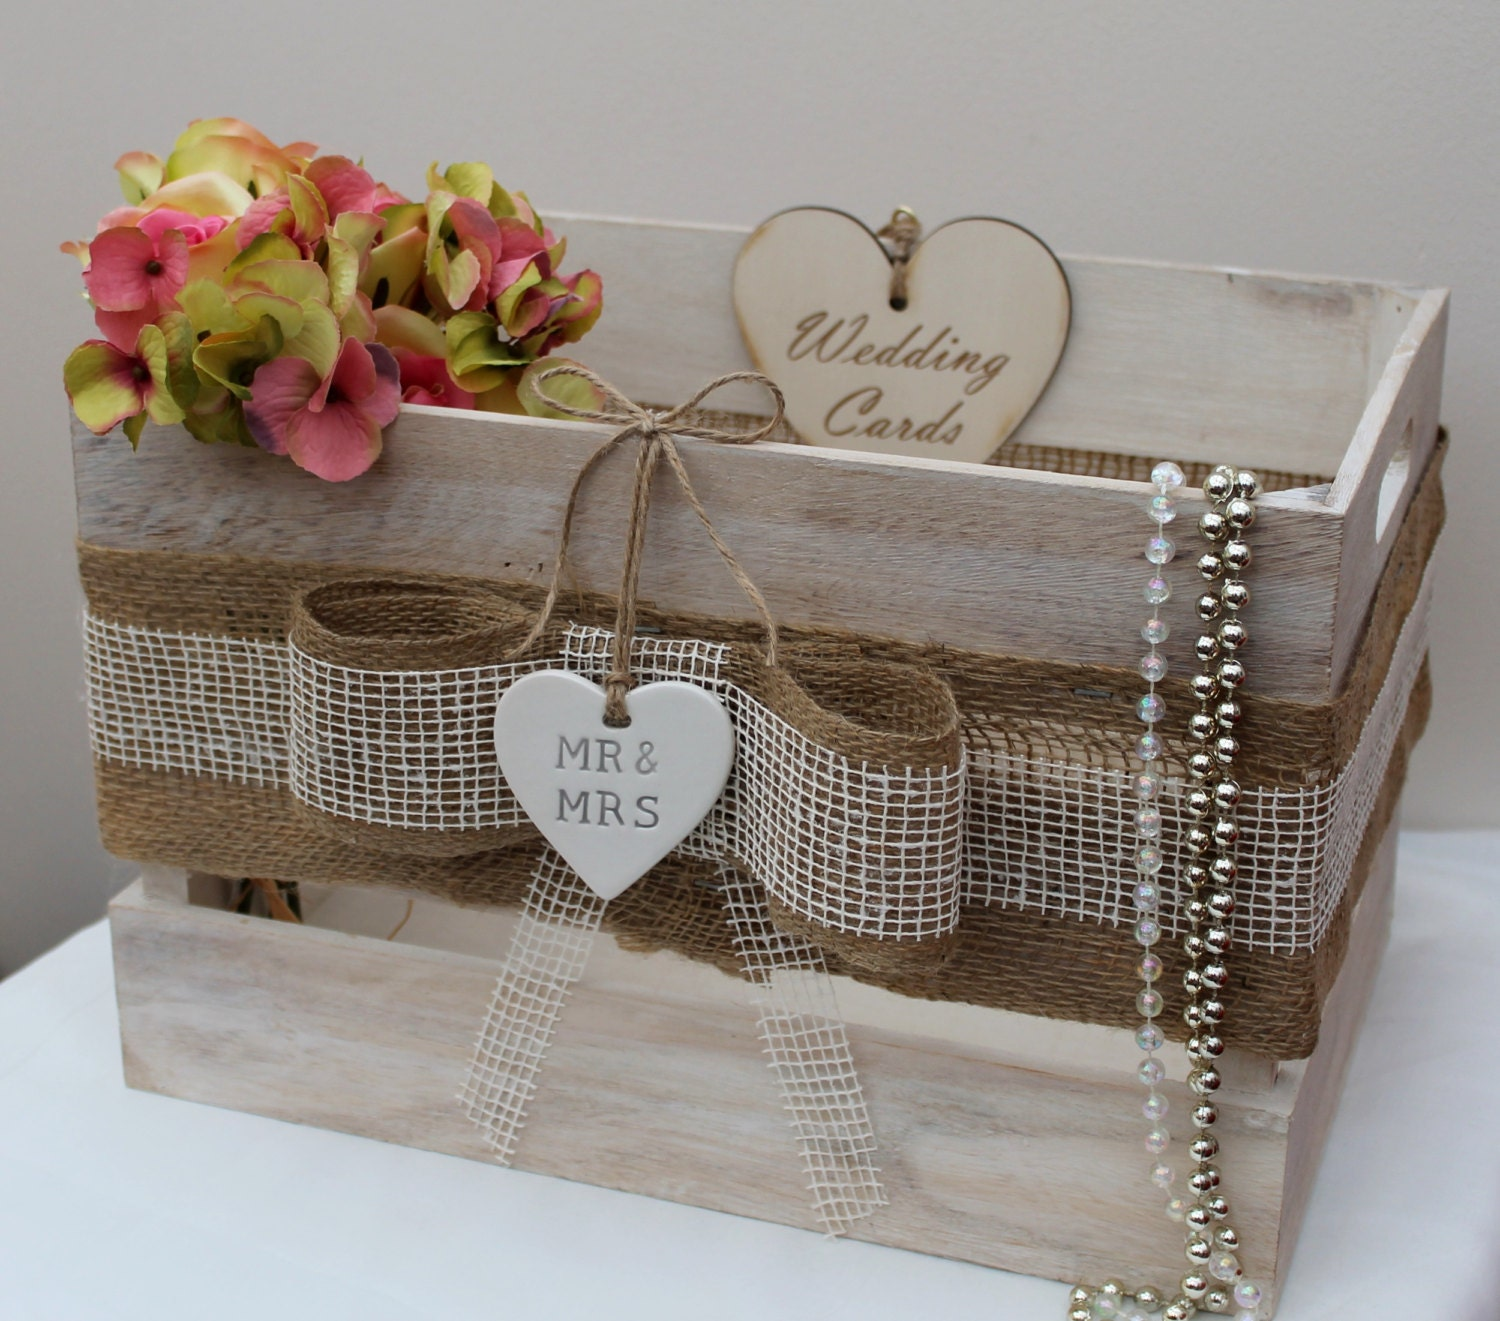 Wedding Reception Gift Card Post Box : Vintage Country Style Wooden MR & MRS Wedding Crate Wedding